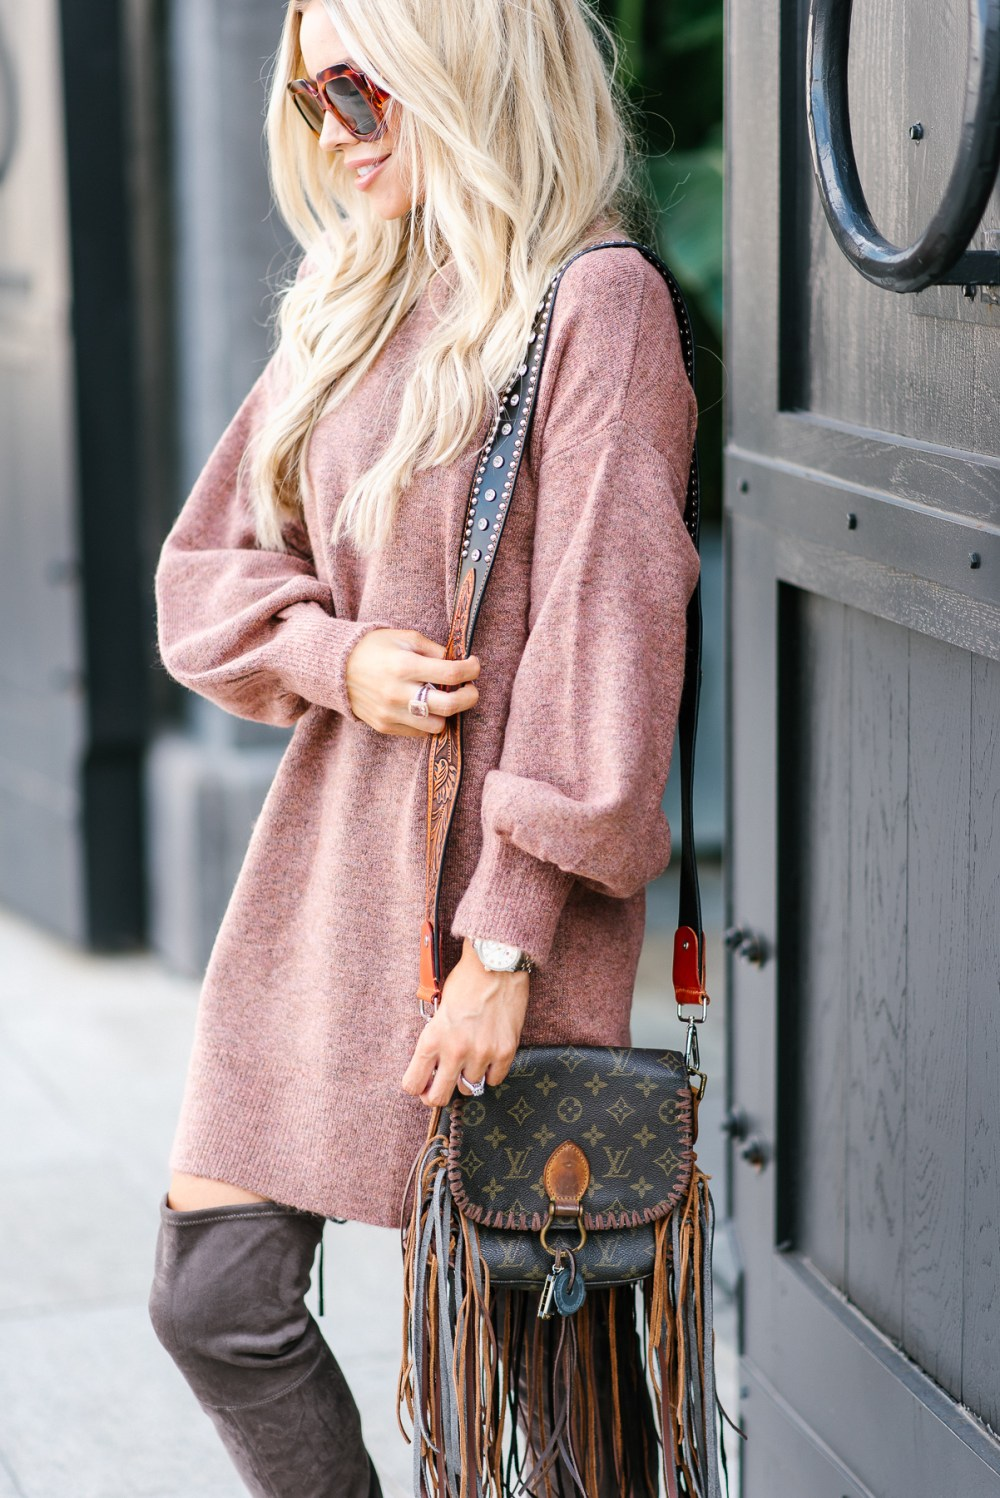 This over-sized sweater dress is a fall must have and comes in many gorgeous colors!